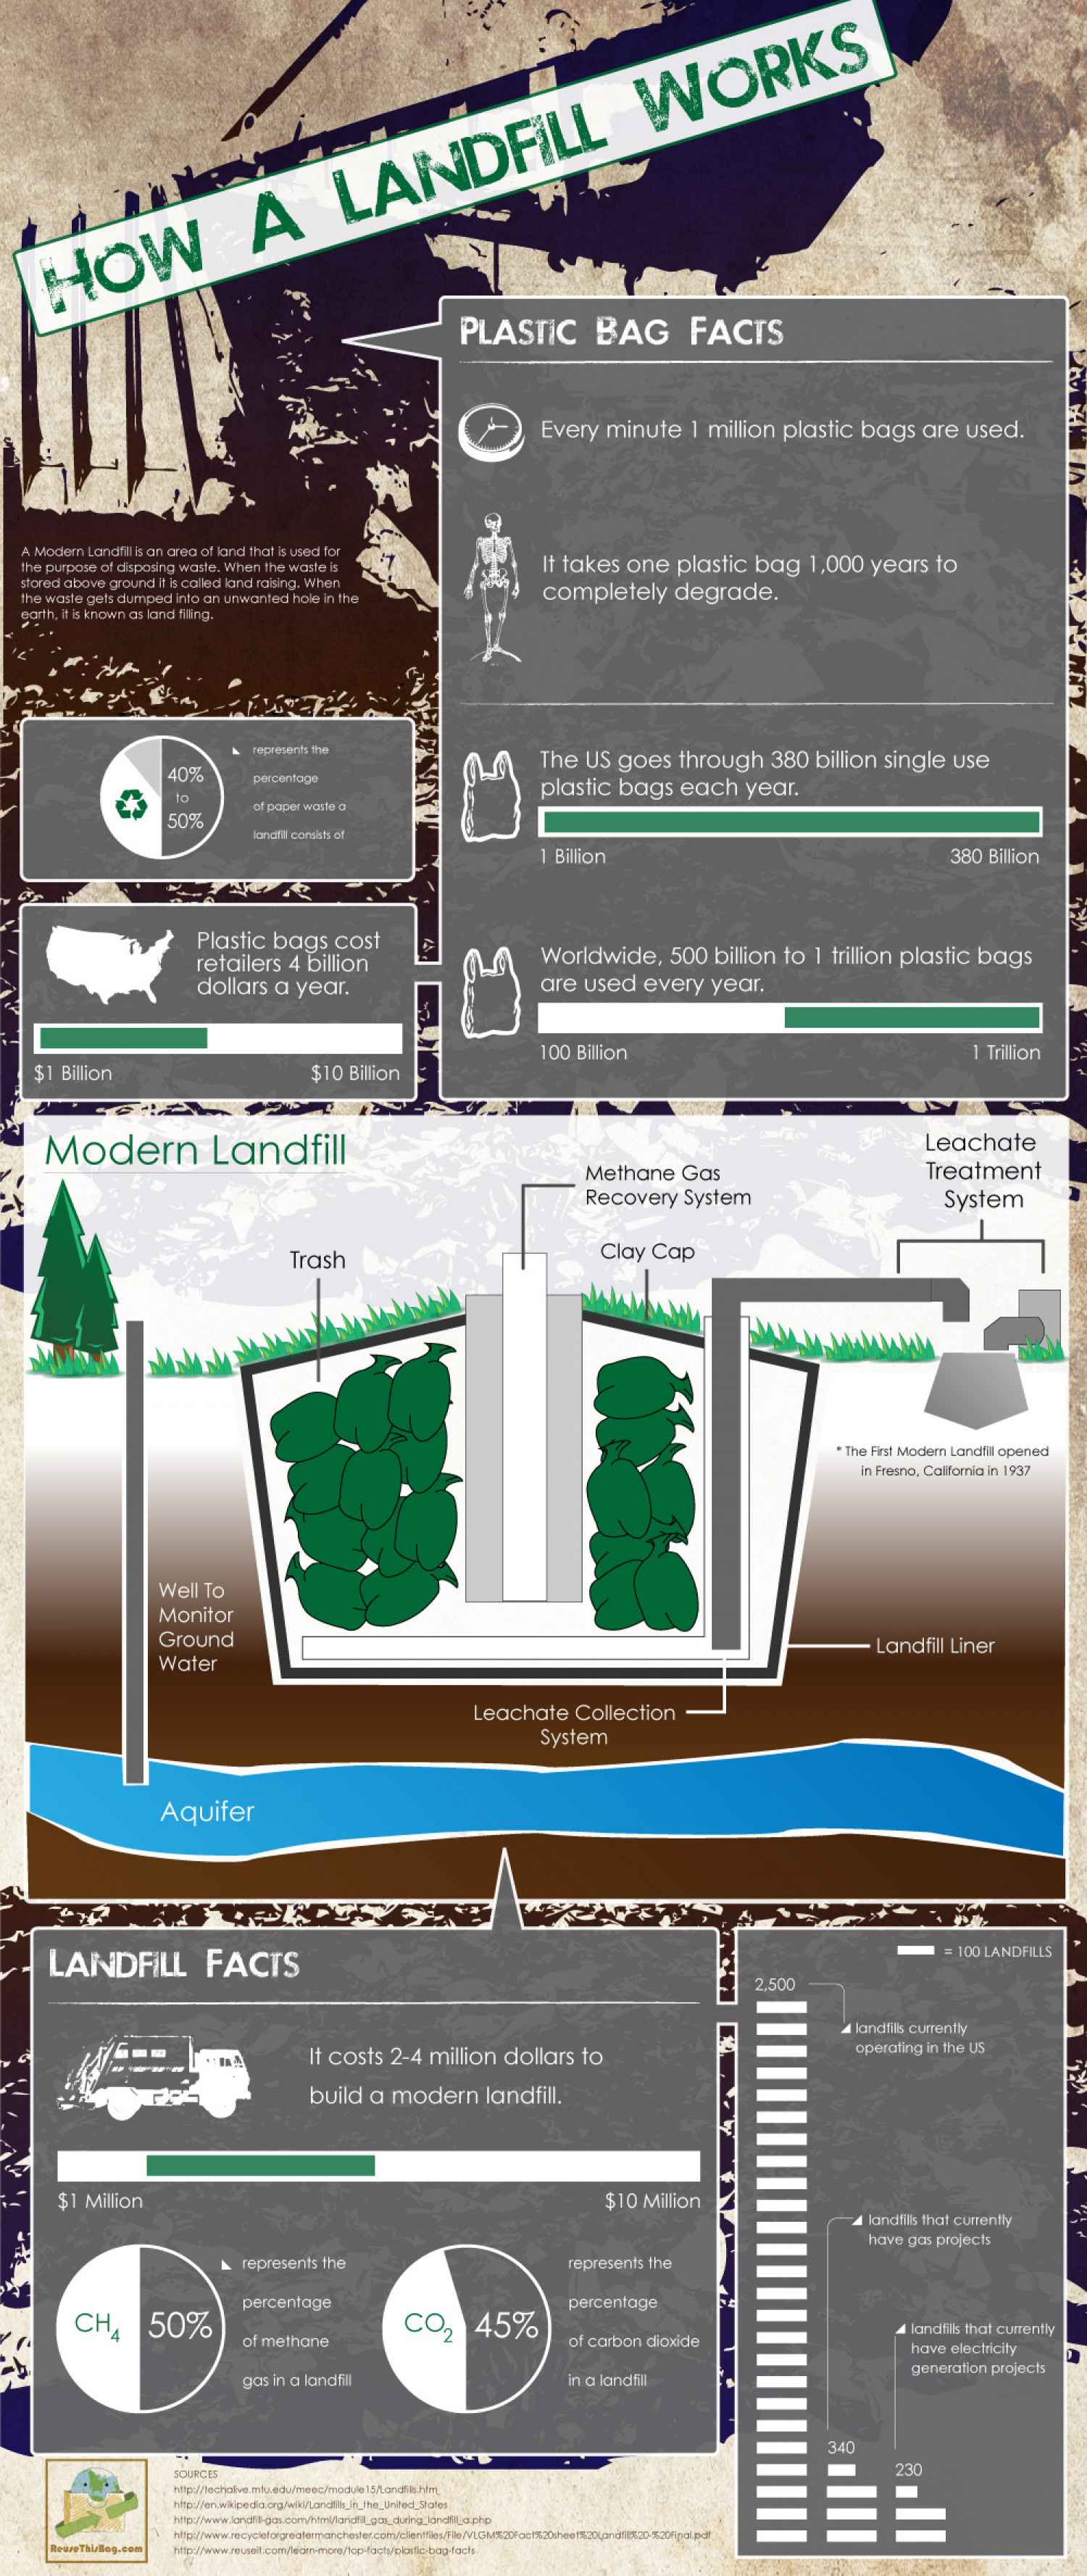 How A Landfill Works Infographic